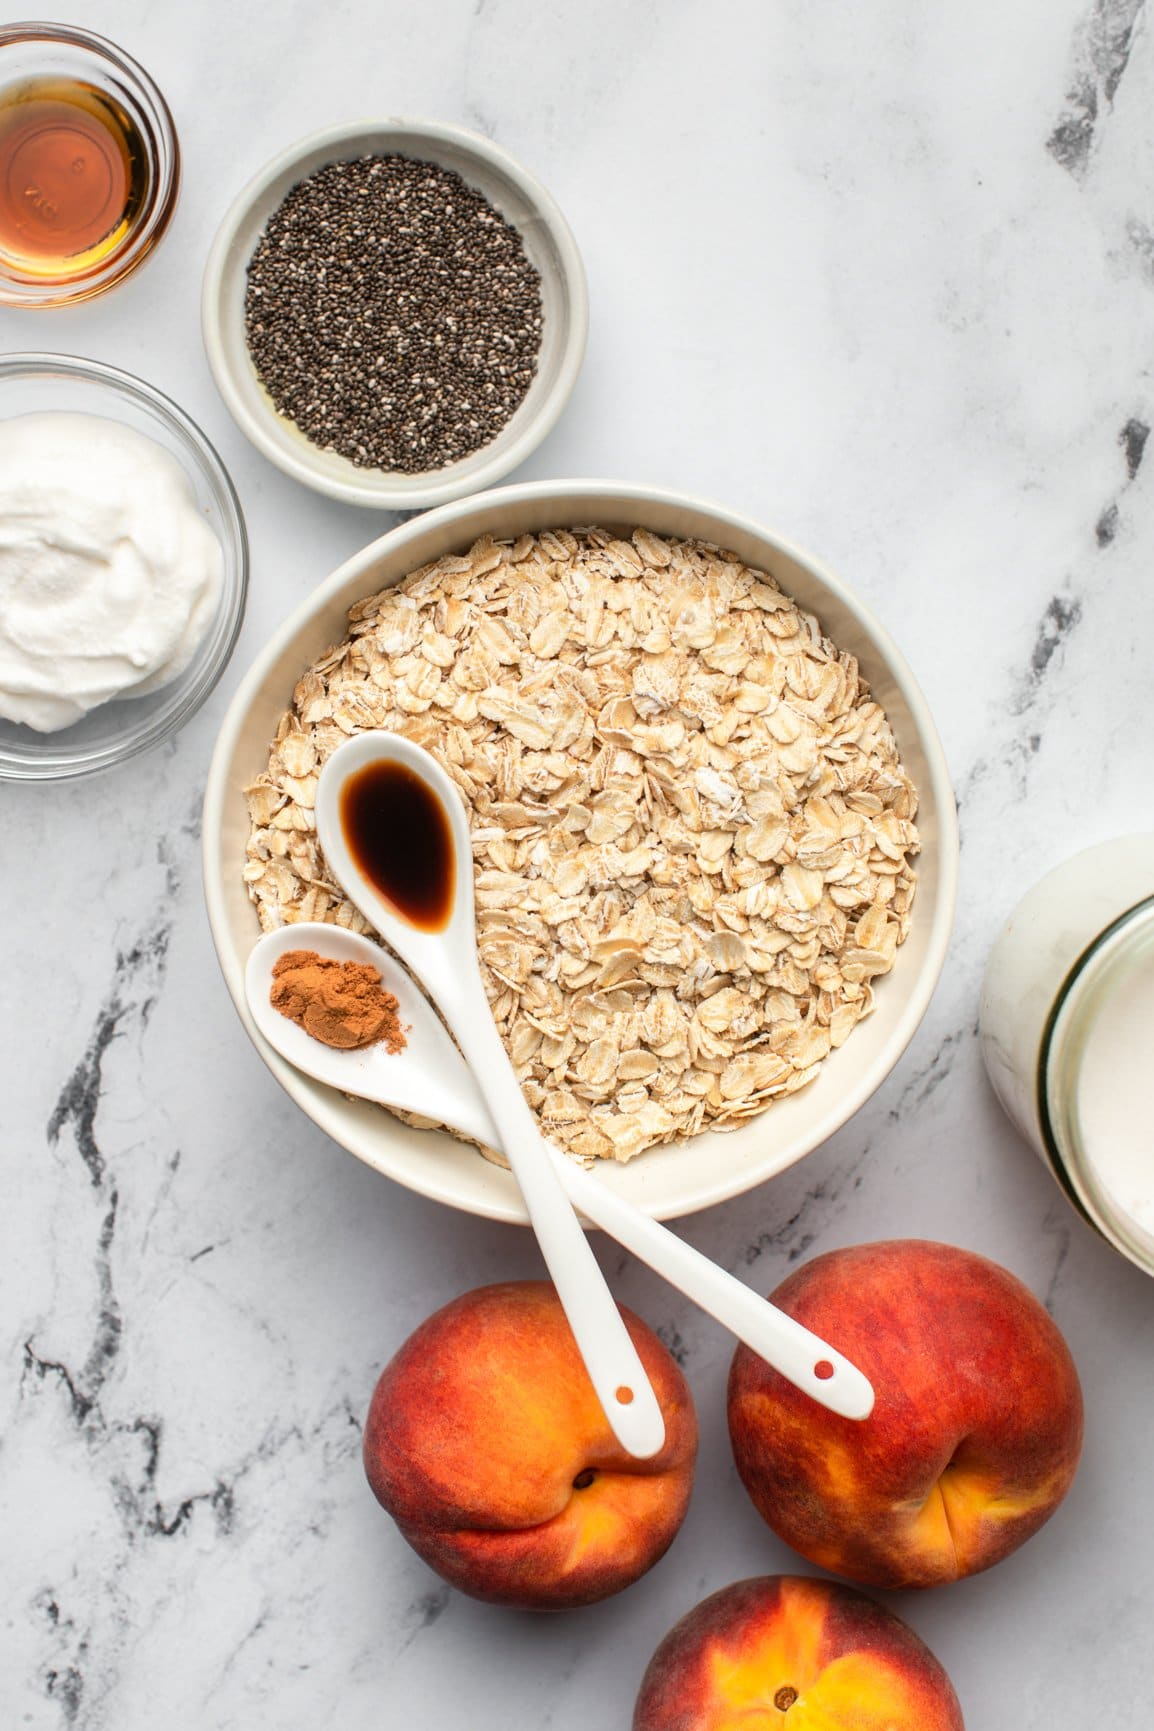 ingredients for peaches and cream oatmeal arranged on marble table top